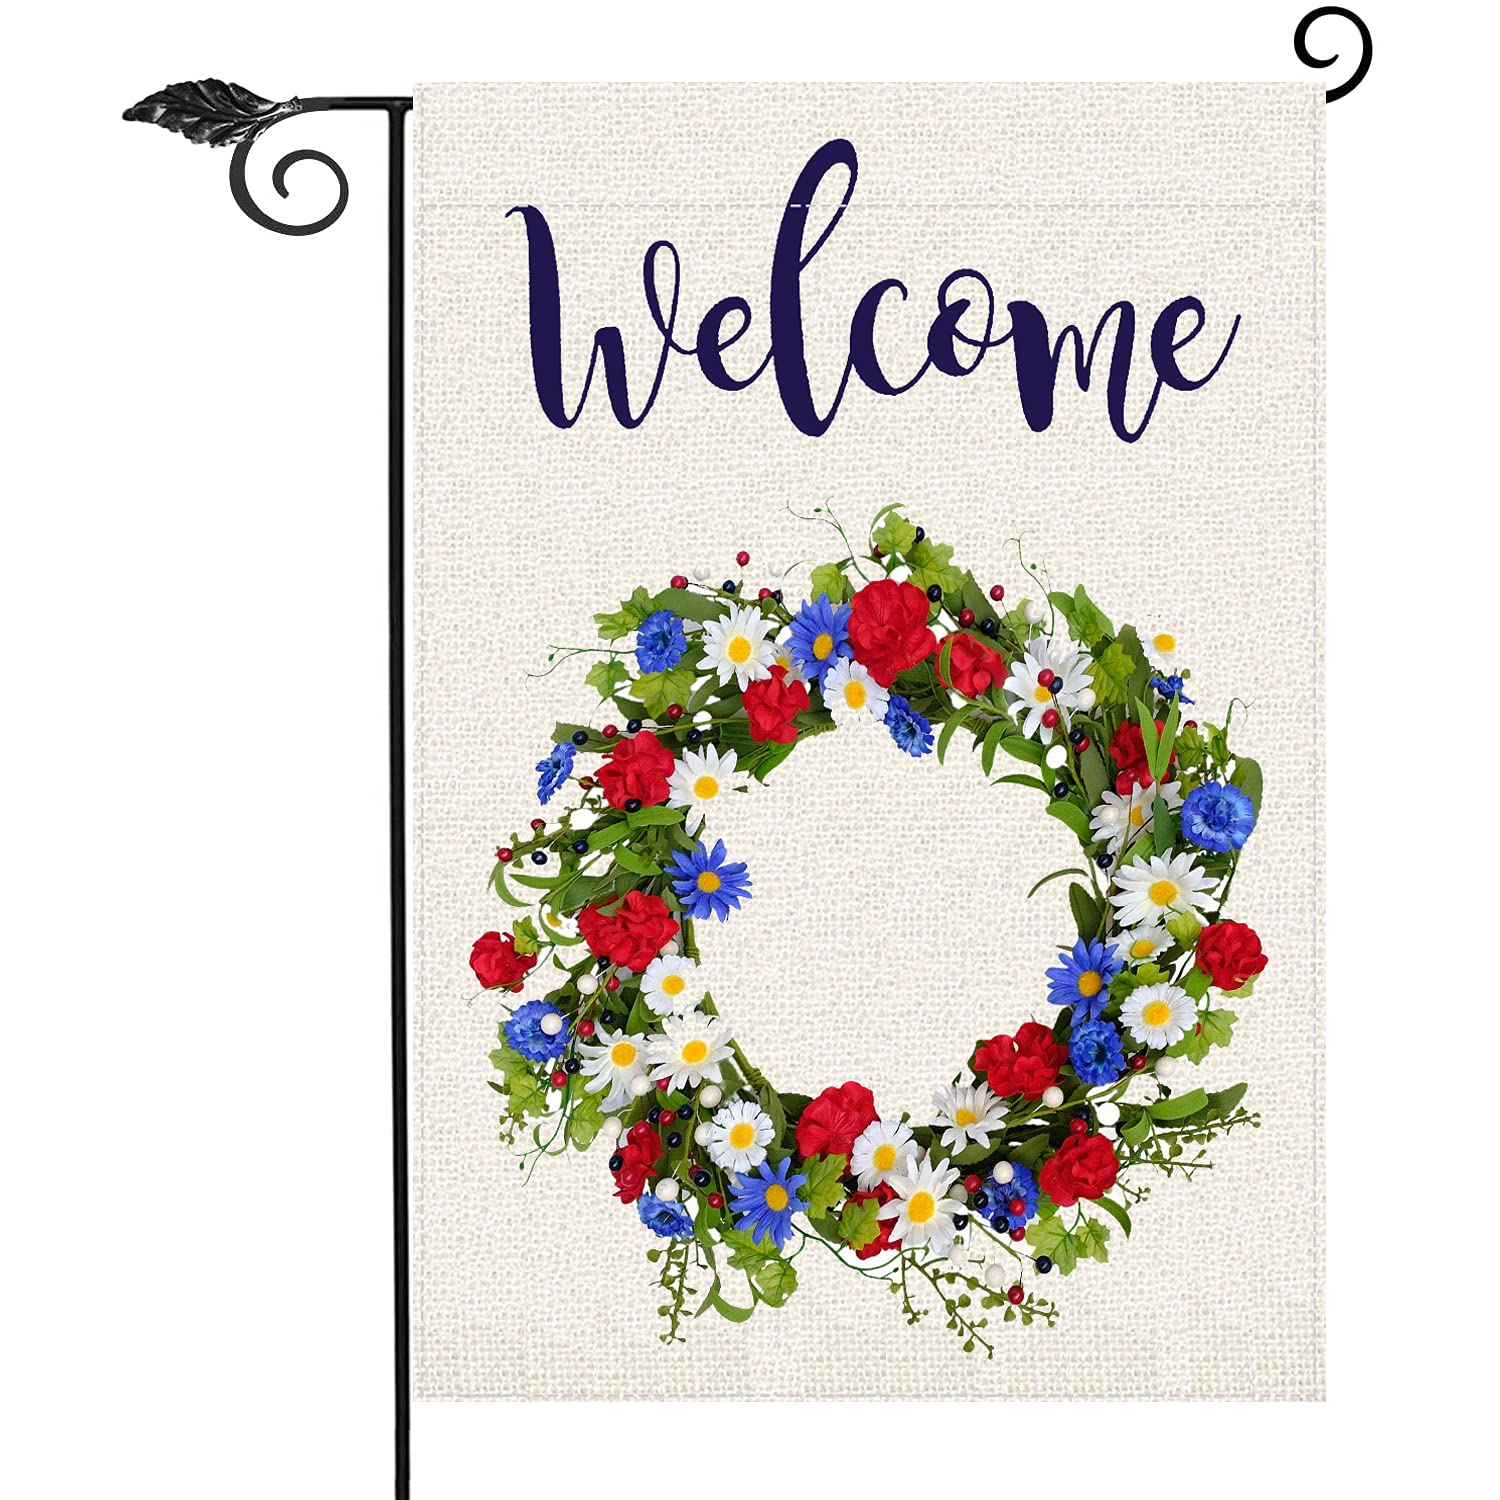 Red White Blue Patriotic Twig Wreath Garden Flag,4th of July Memorial Day Independence Day Burlap Yard Garden Outdoor Decoration 12.5 x 18 Inch